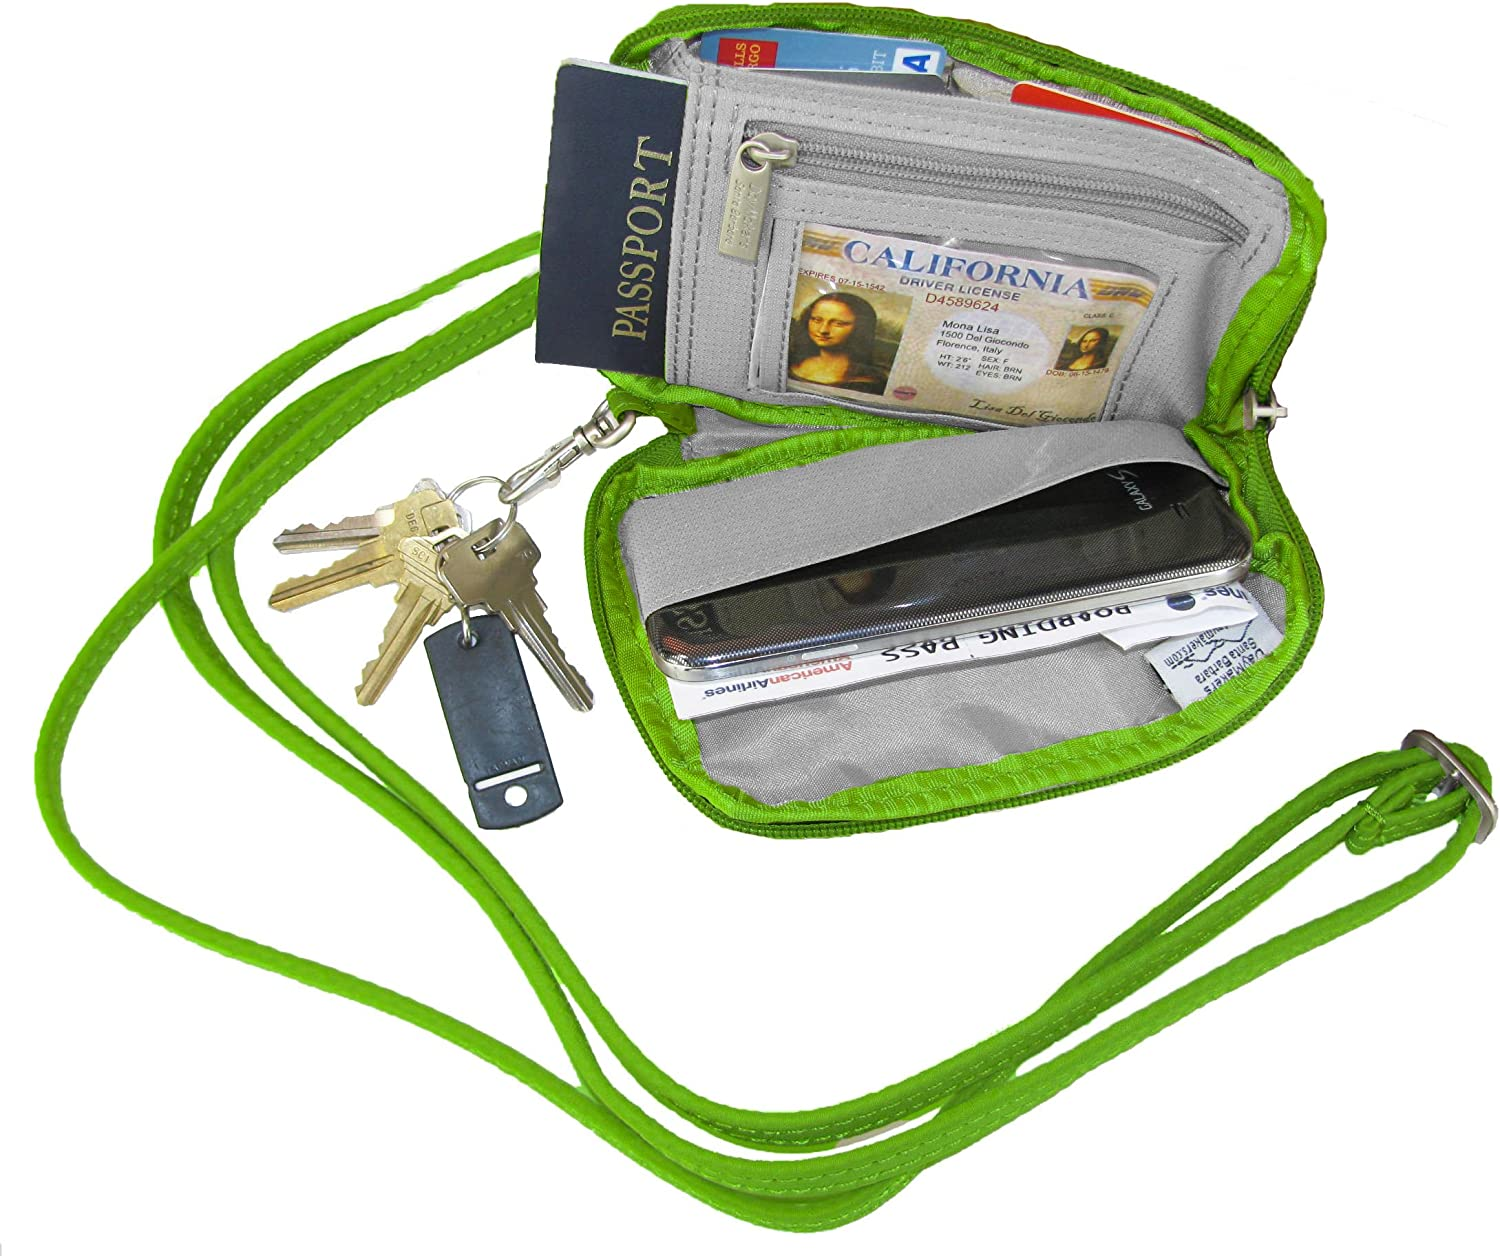 Be Safe Bags Anti-Theft RFID Multi-Compartment Compact Passport Zipper Wallet